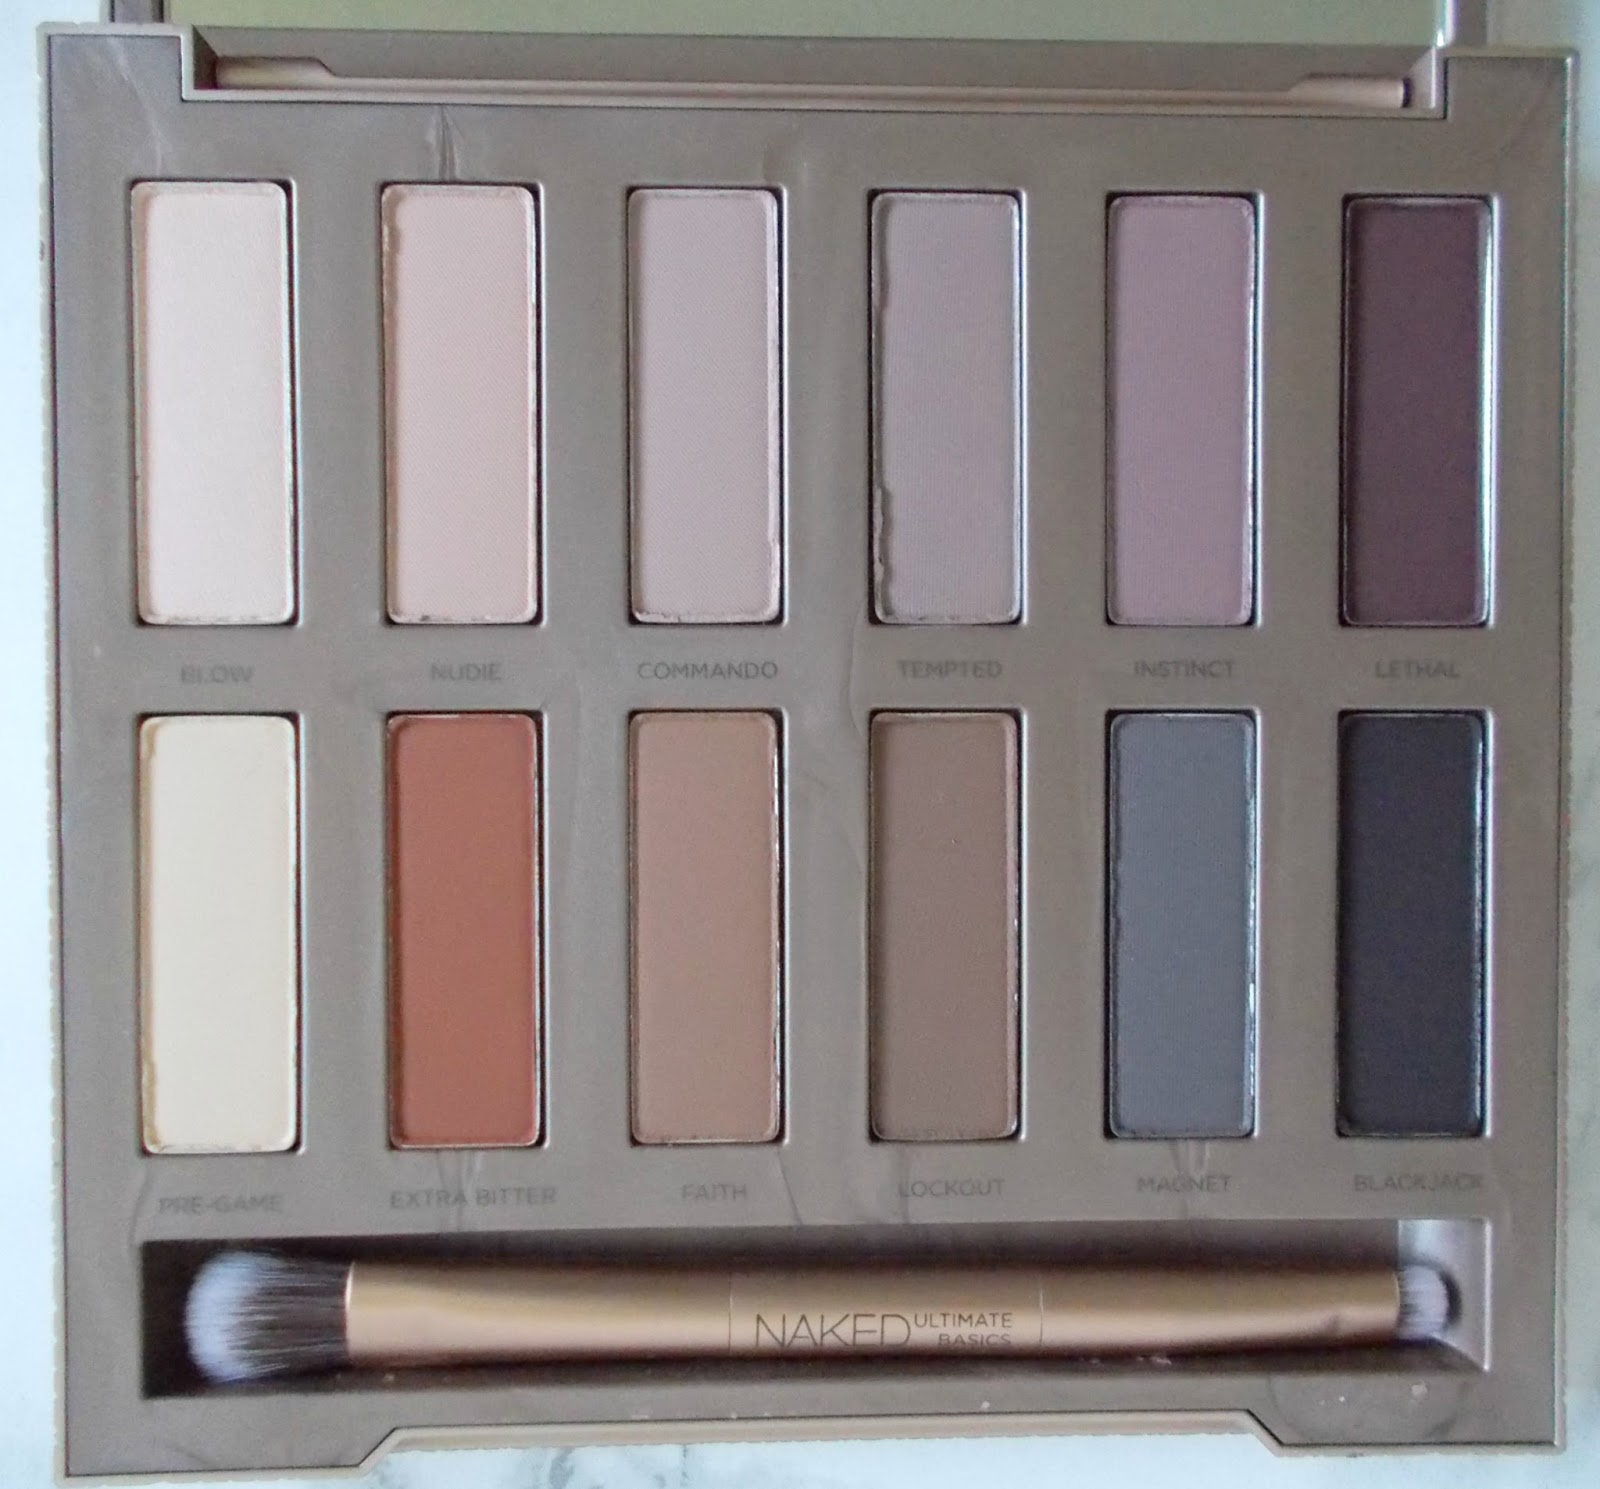 Urban Decay Naked Ultimate Basics close up matte palette